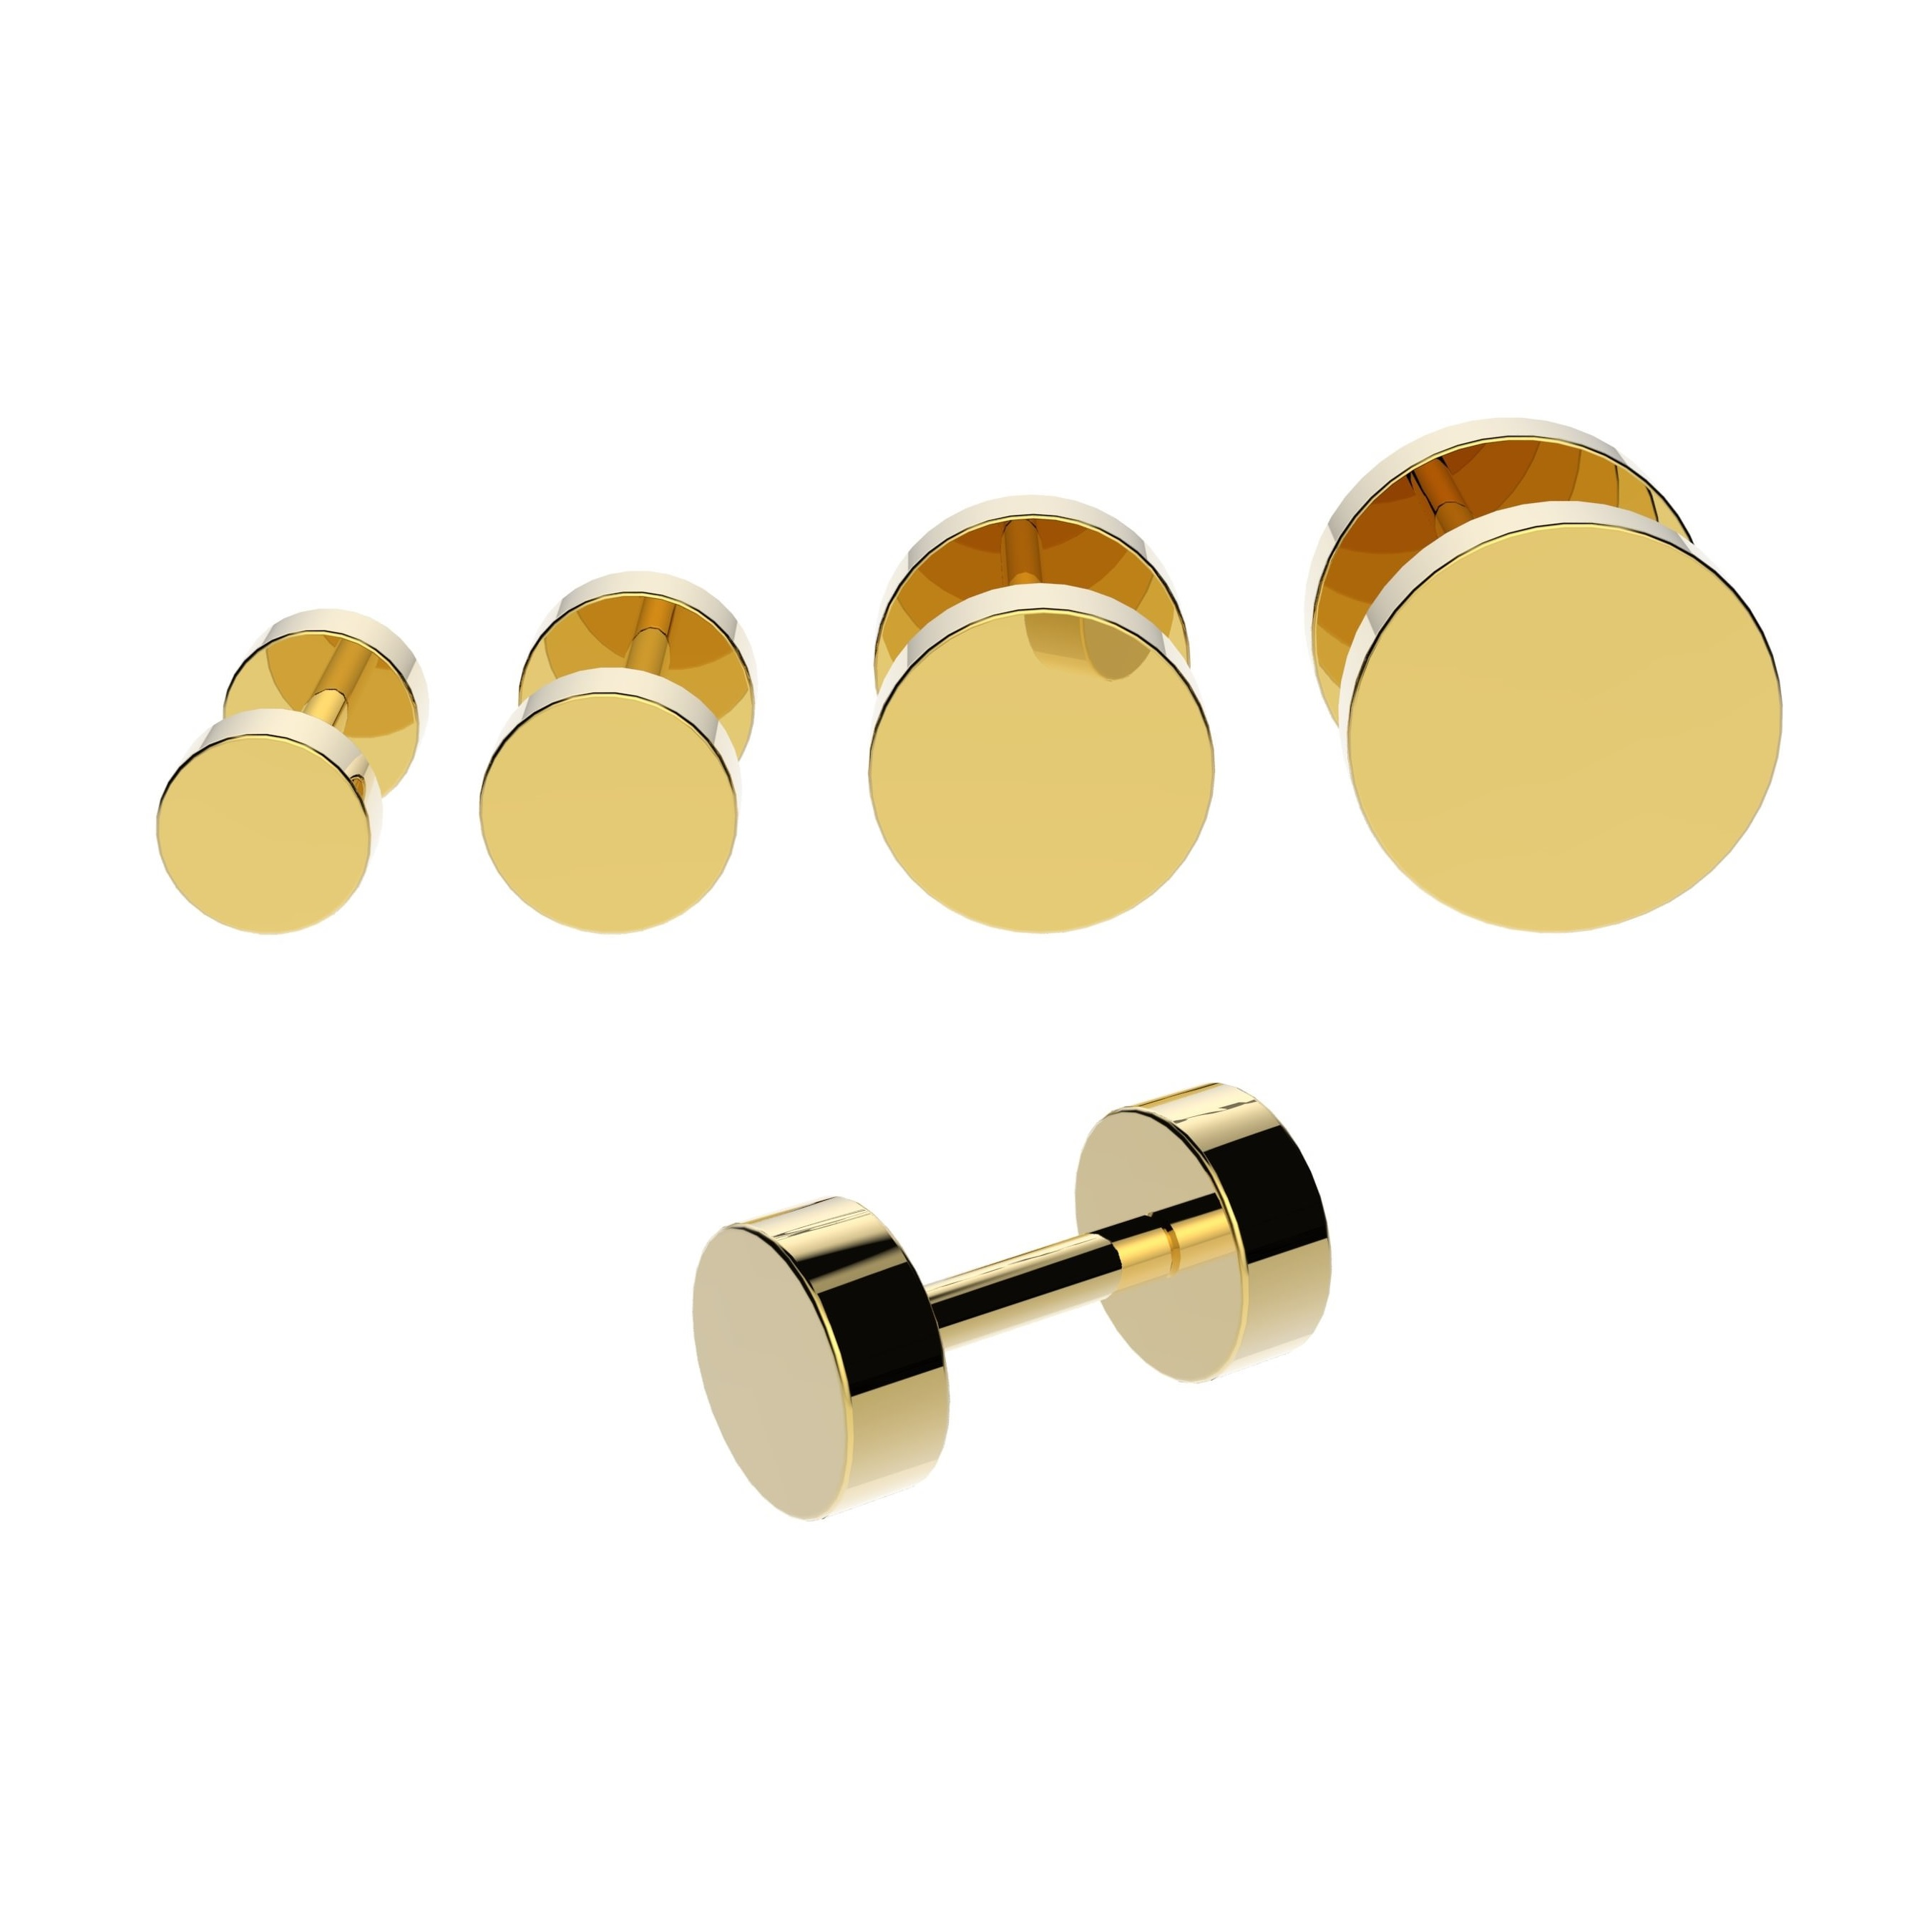 gold fake cheater plugs vault 101 limited free uk deliveryc. Black Bedroom Furniture Sets. Home Design Ideas